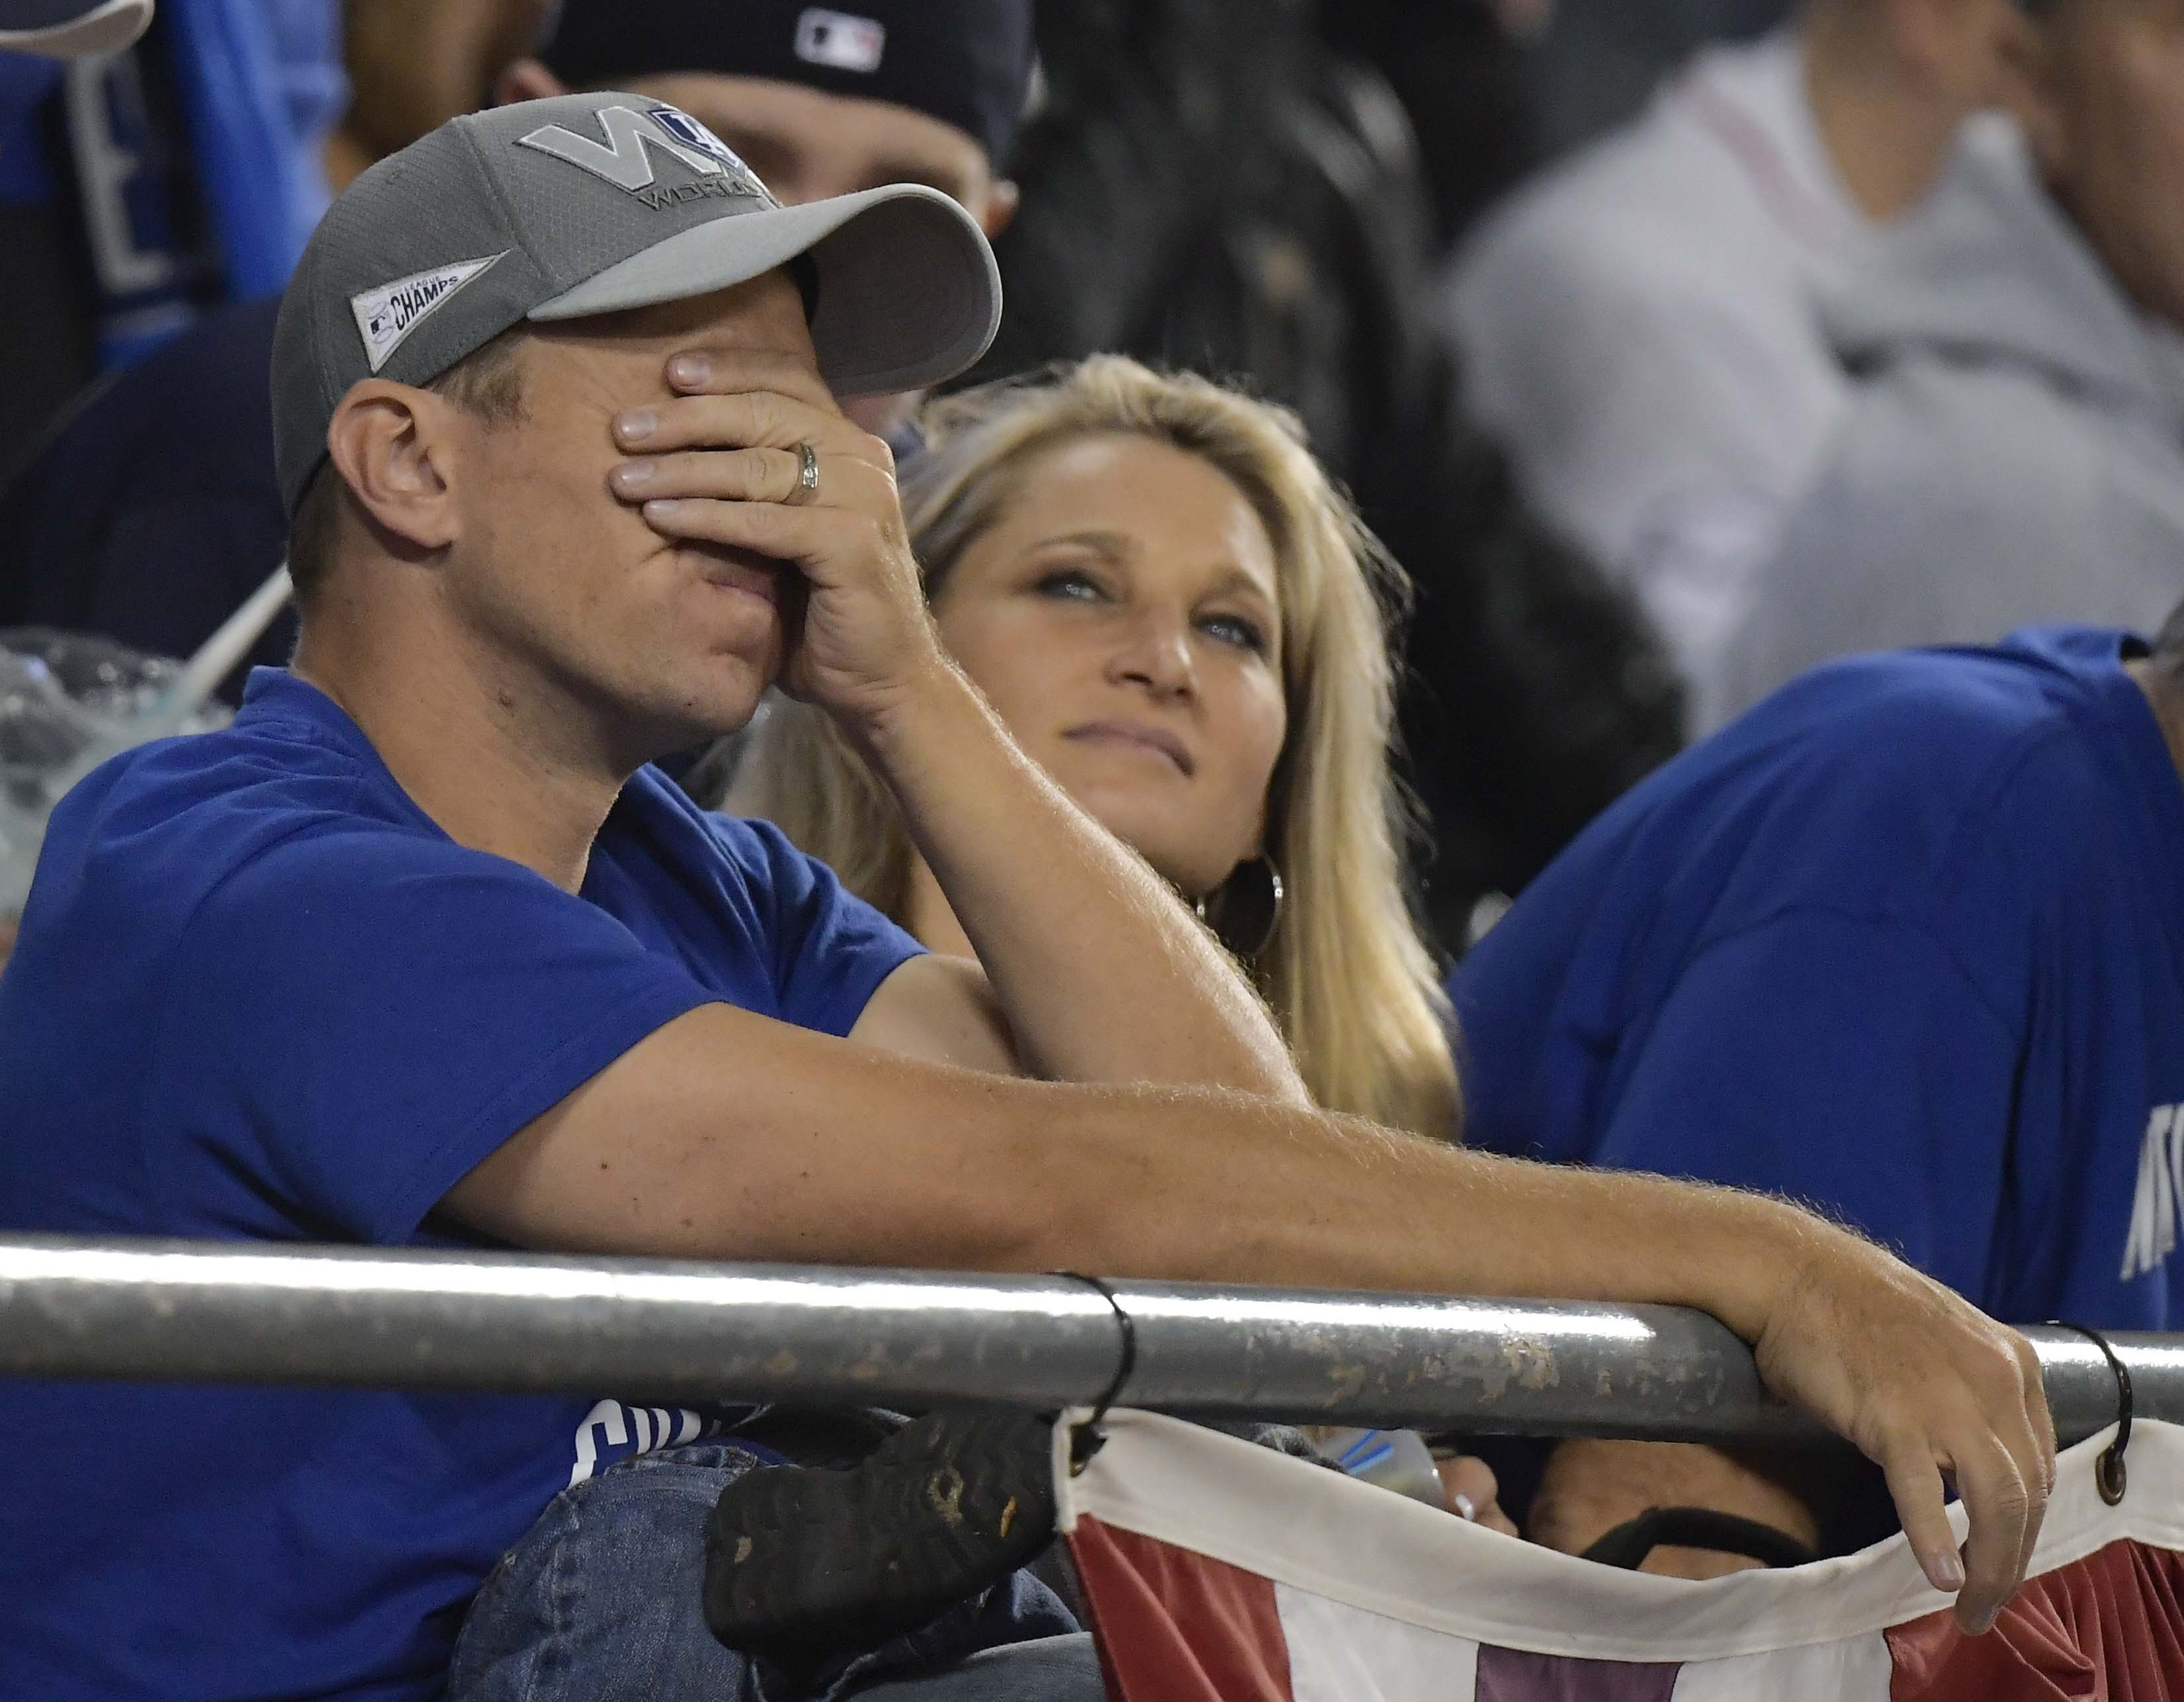 A Los Angeles Dodgers fan wipes his face during the eighth inning in Game 5 of the World Series baseball game against the Boston Red Sox on Sunday, Oct. 28, 2018, in Los Angeles. (AP Photo/Mark J. Terrill)